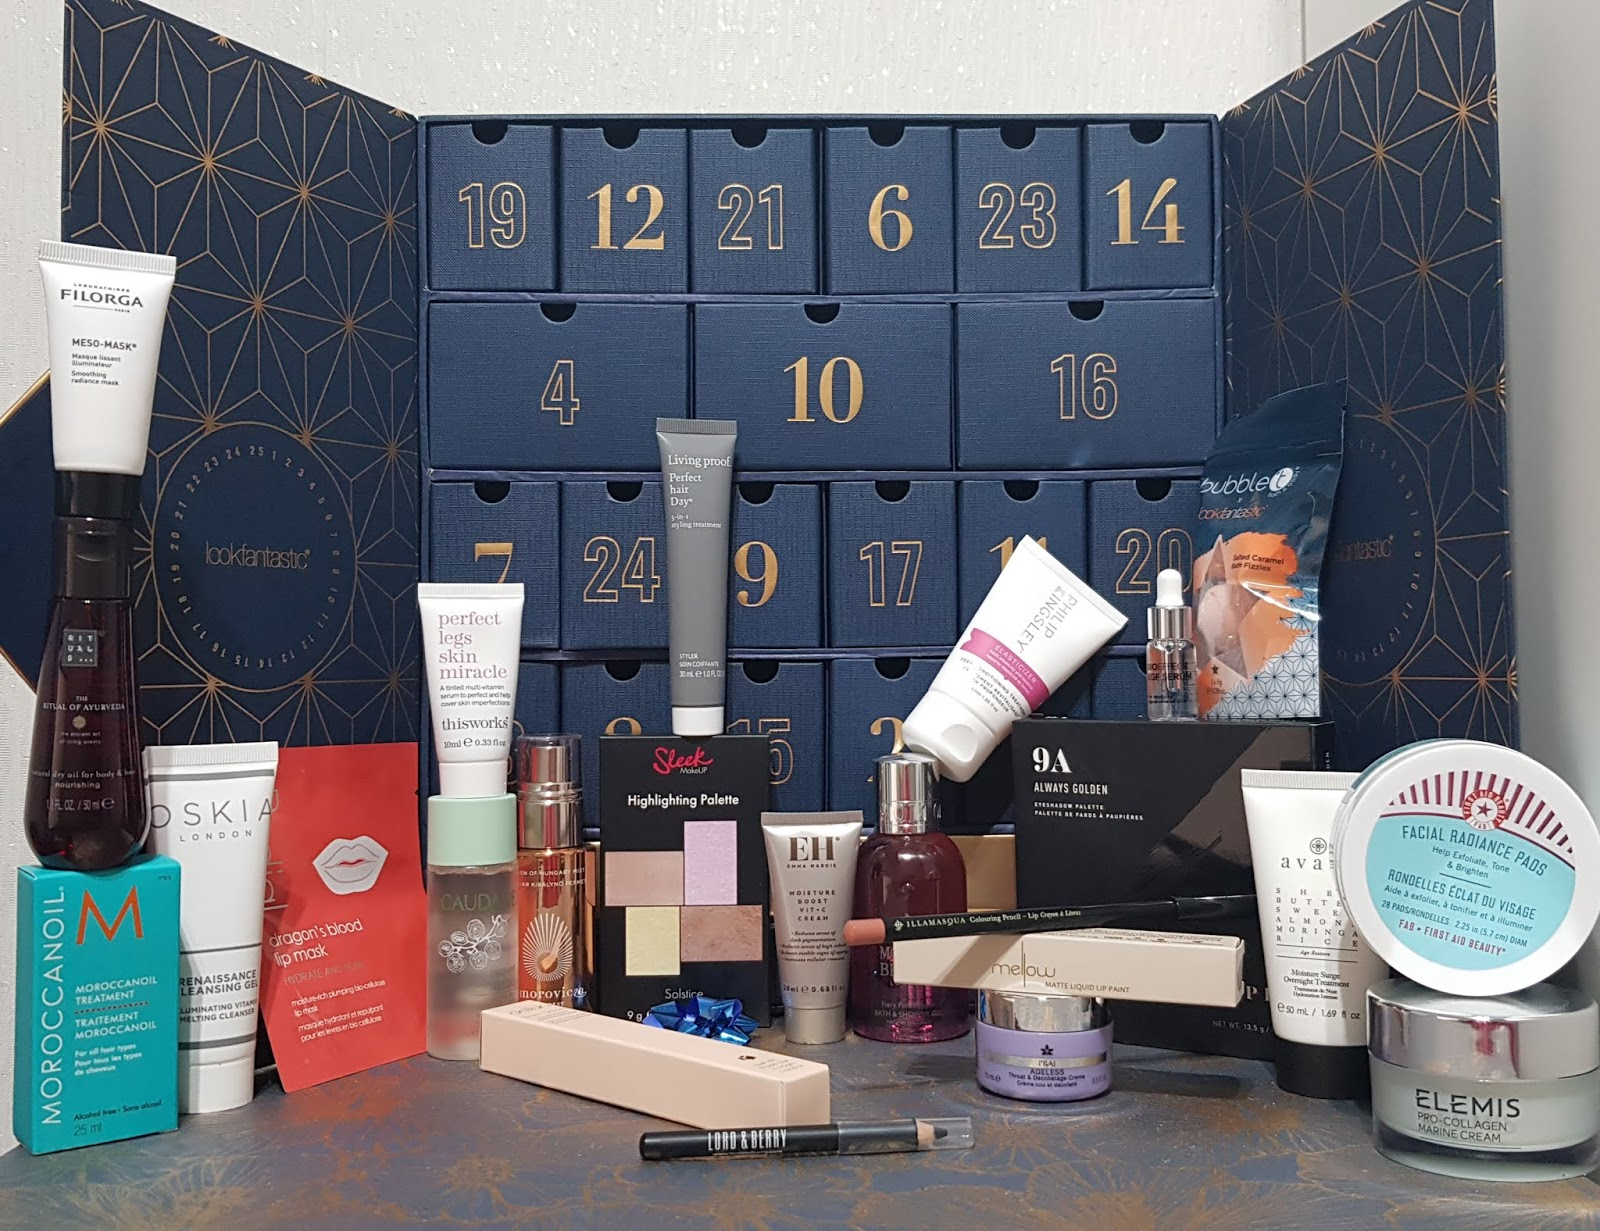 Many of the products from the 2019 Look Fantastic beauty Advent Calendar